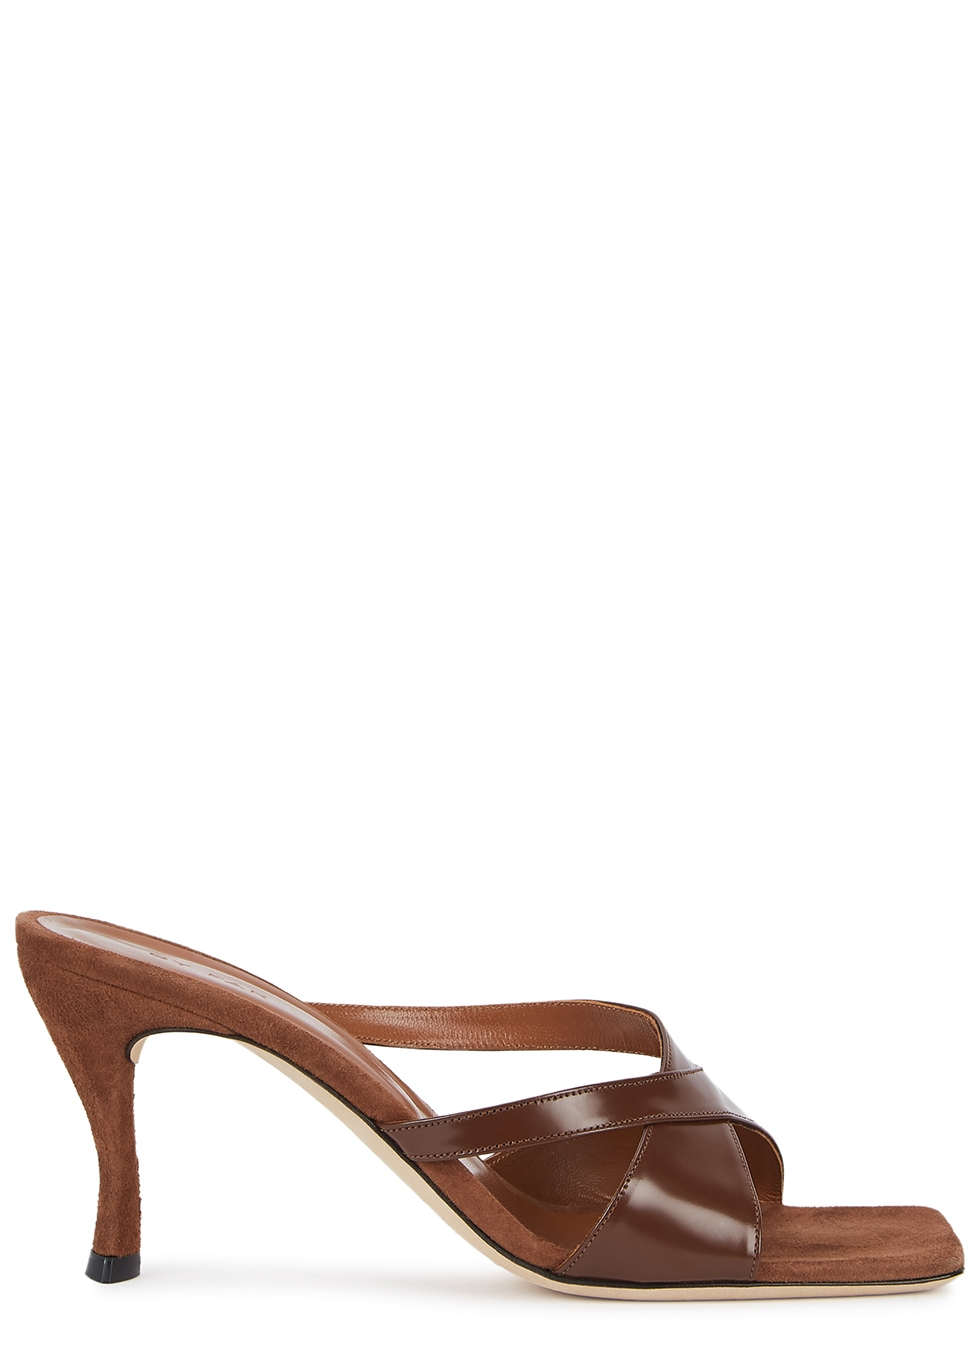 Kitty 75 brown leather mules